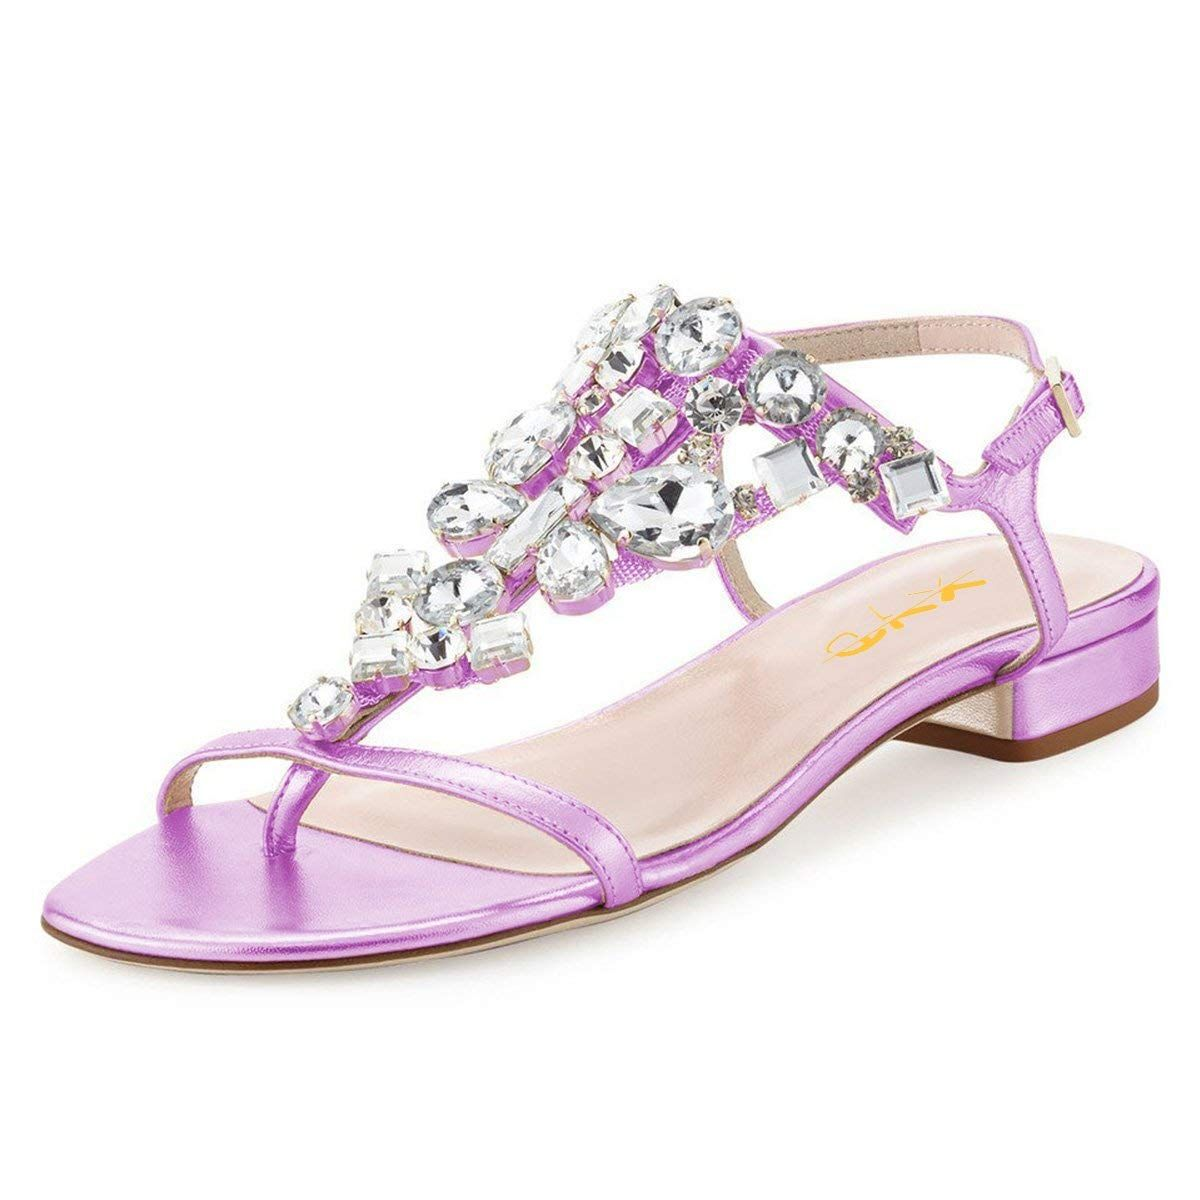 215d9b5e043 XYD Women T-Strap Flat Sandals Open Toe Rhinestone Slingback Low Heel Ankle  Strap Summer Shoes     Sincerely hope that you like our picture.